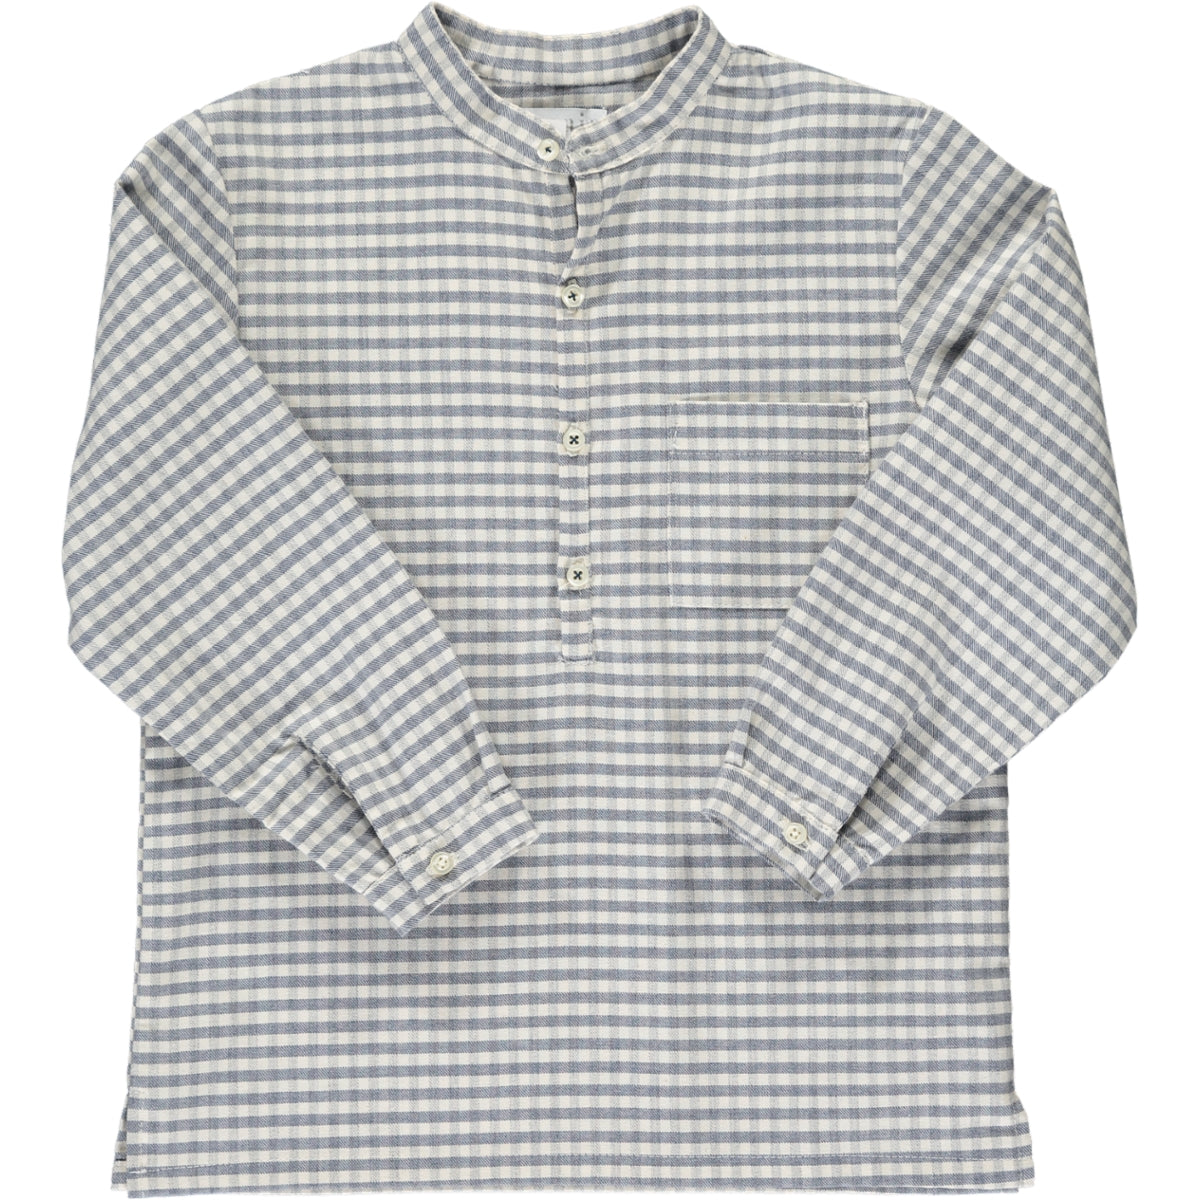 Victor Shirt Grey/Beige Check